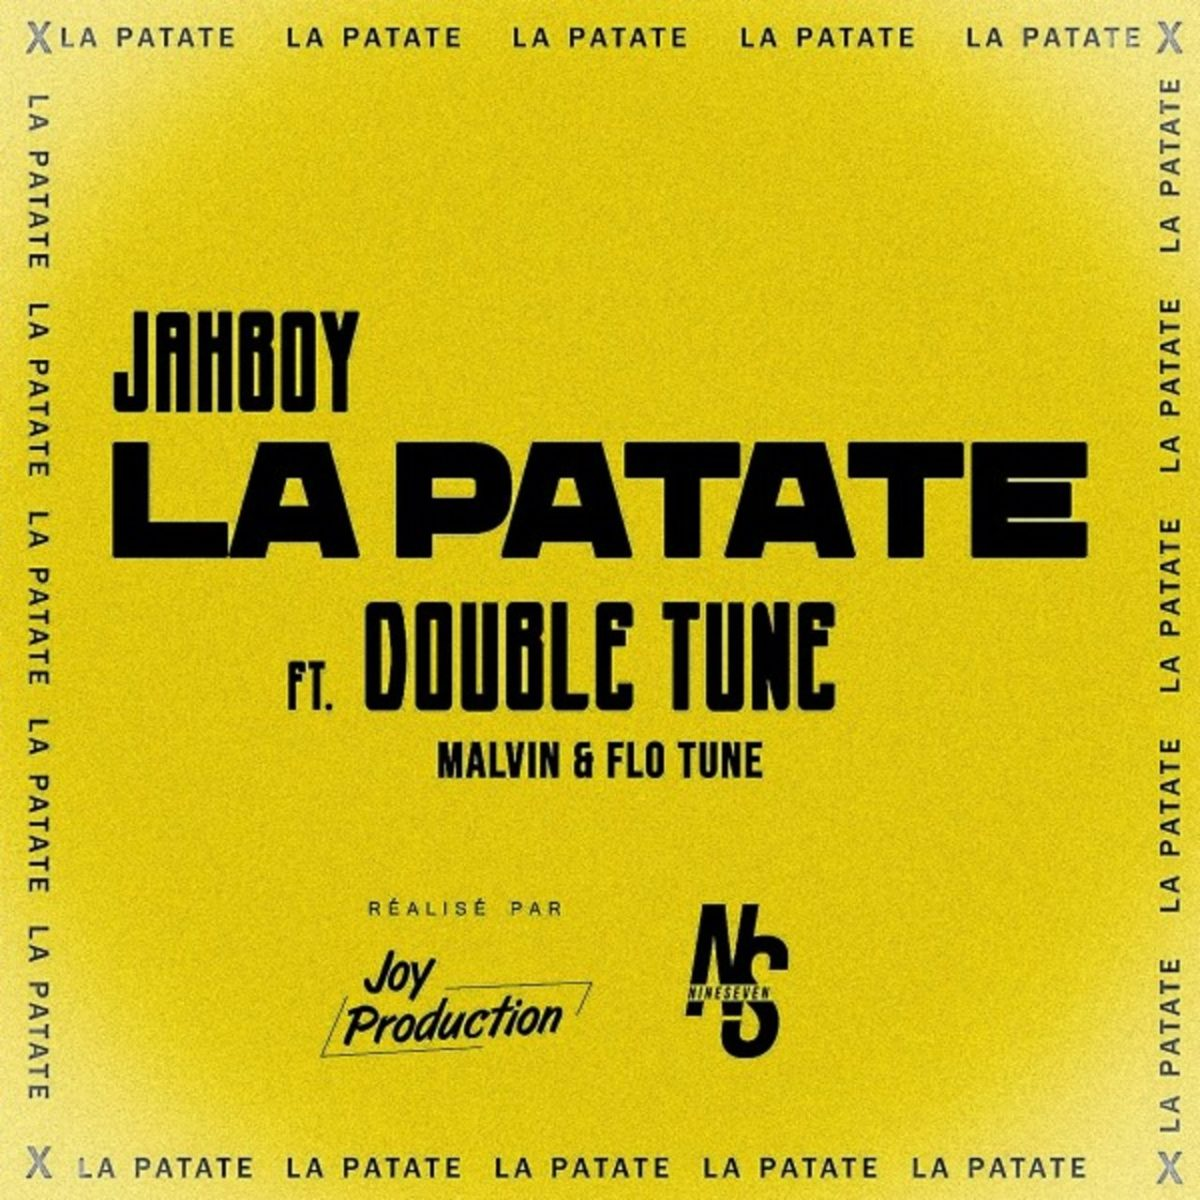 Jahboy - La Patate (ft. Double Tune) (Cover)